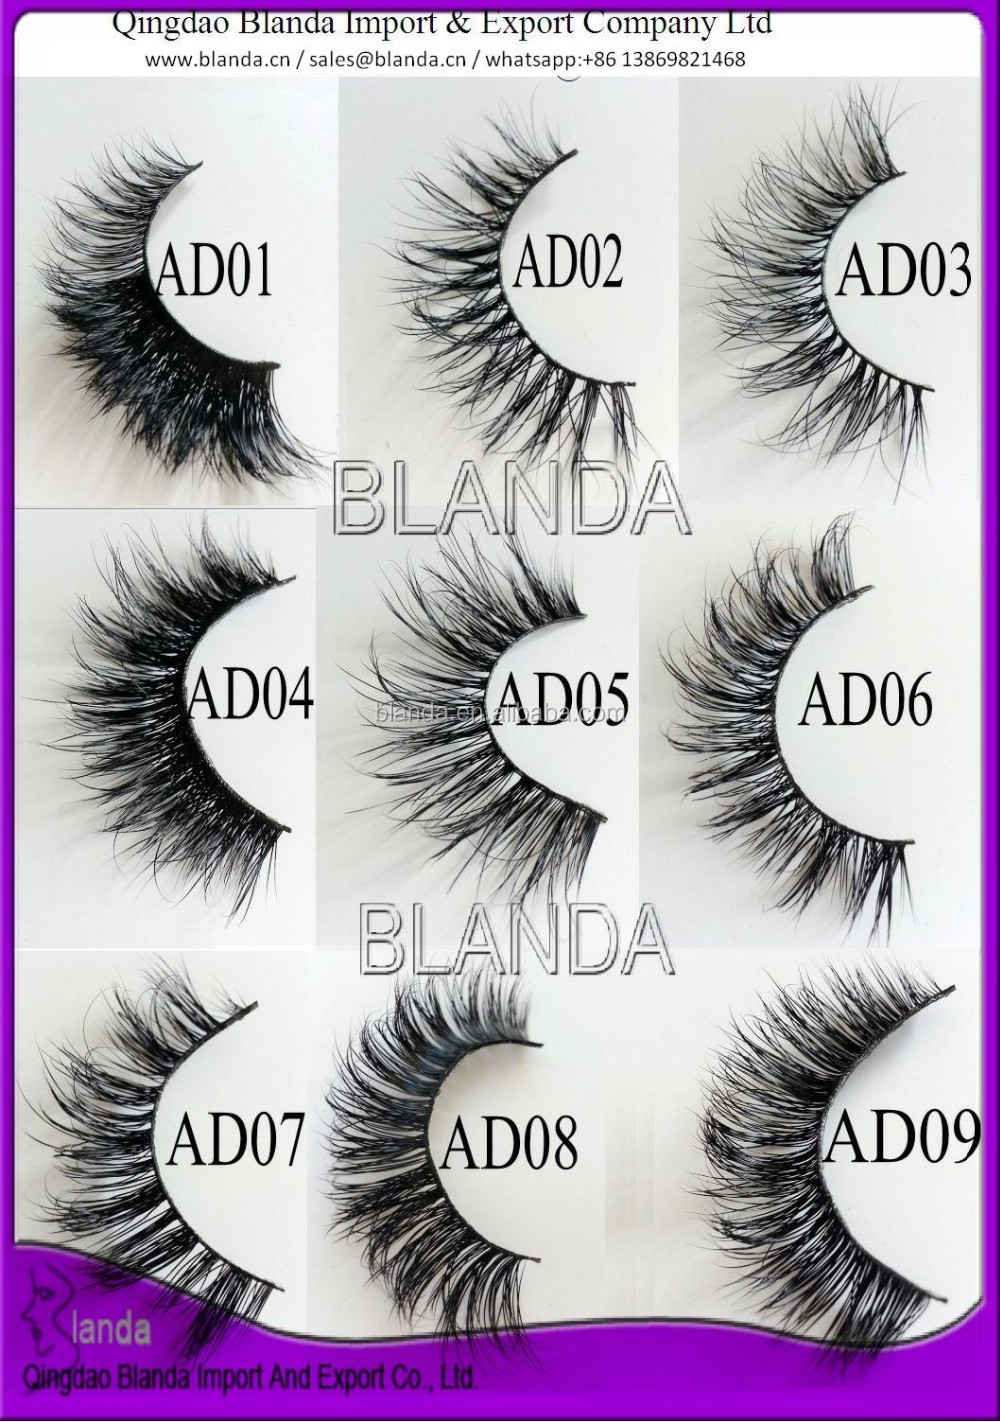 41c3264d052 2016 hot selling 3d silk lashes; custom eyelash packaging; private label  eye lashes package